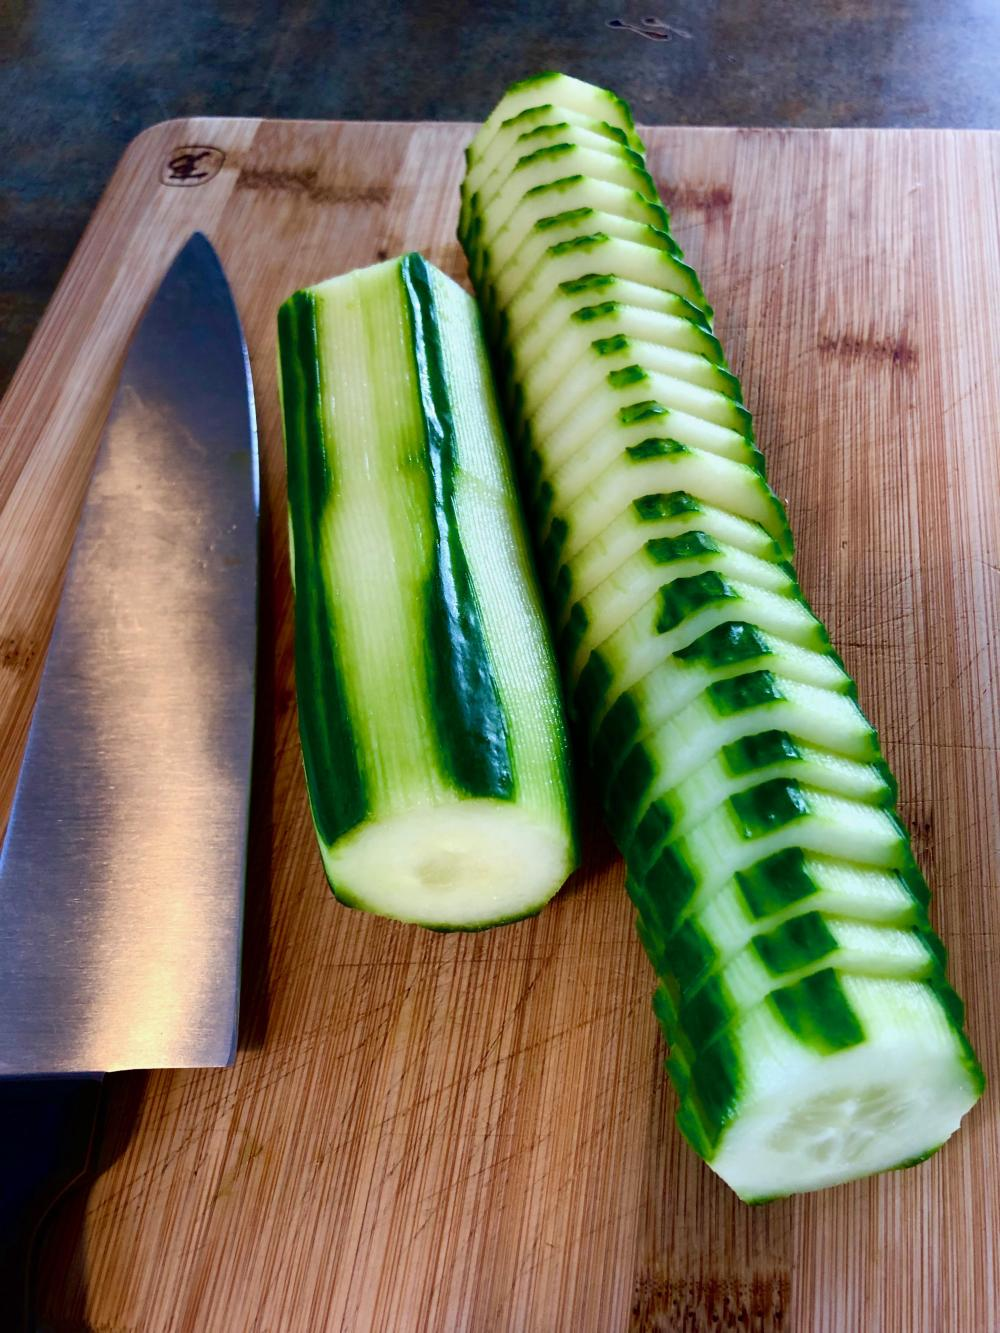 This is how I cucumber